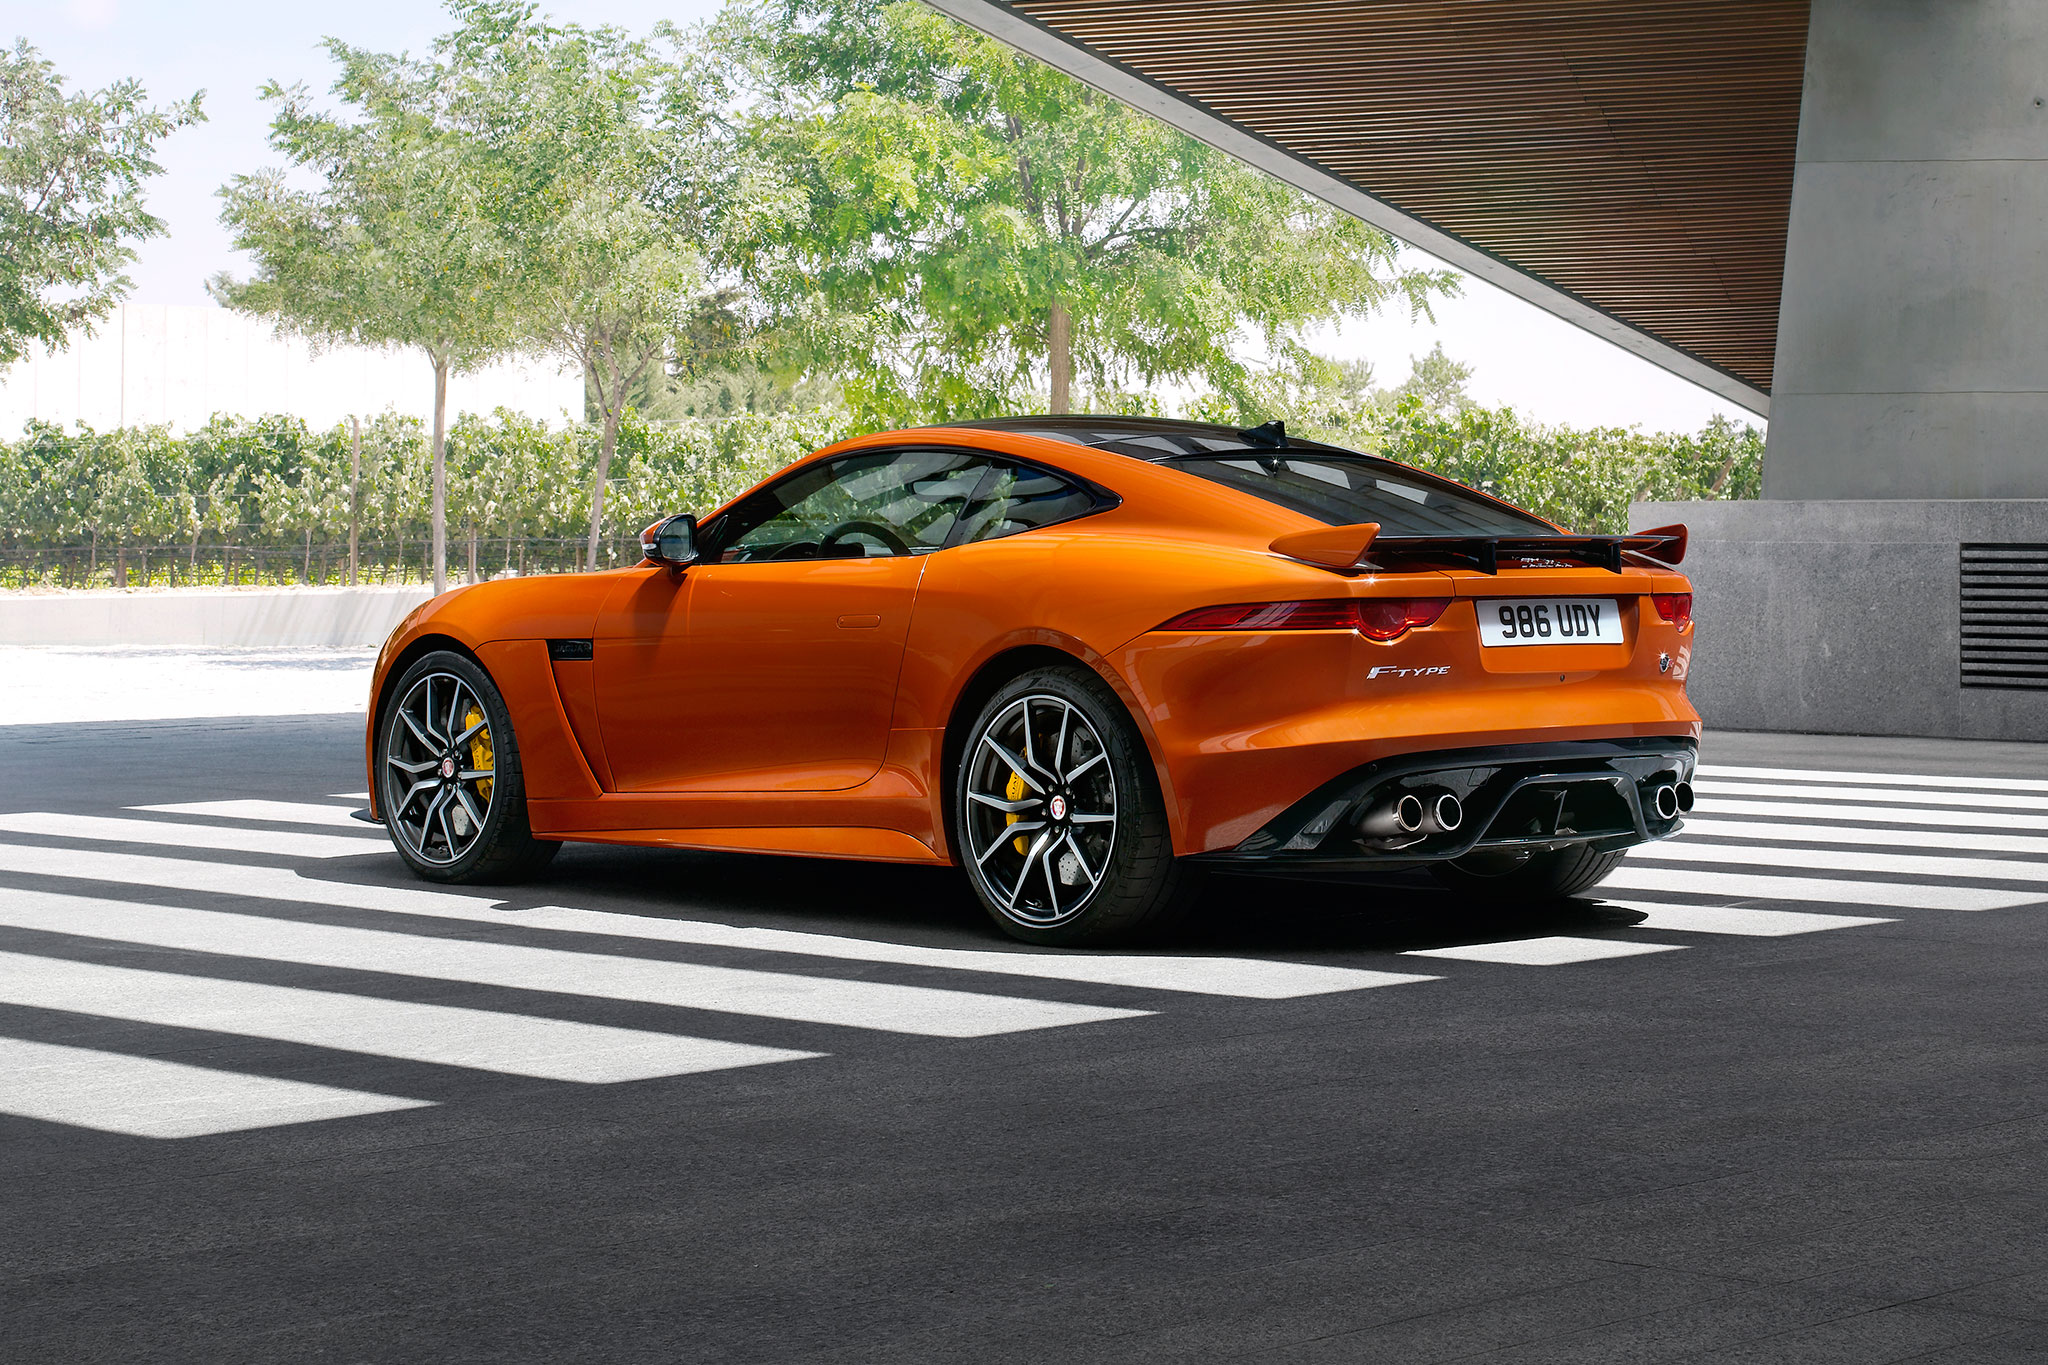 2017-jaguar-f-type-svr-rear-three-quarter-01